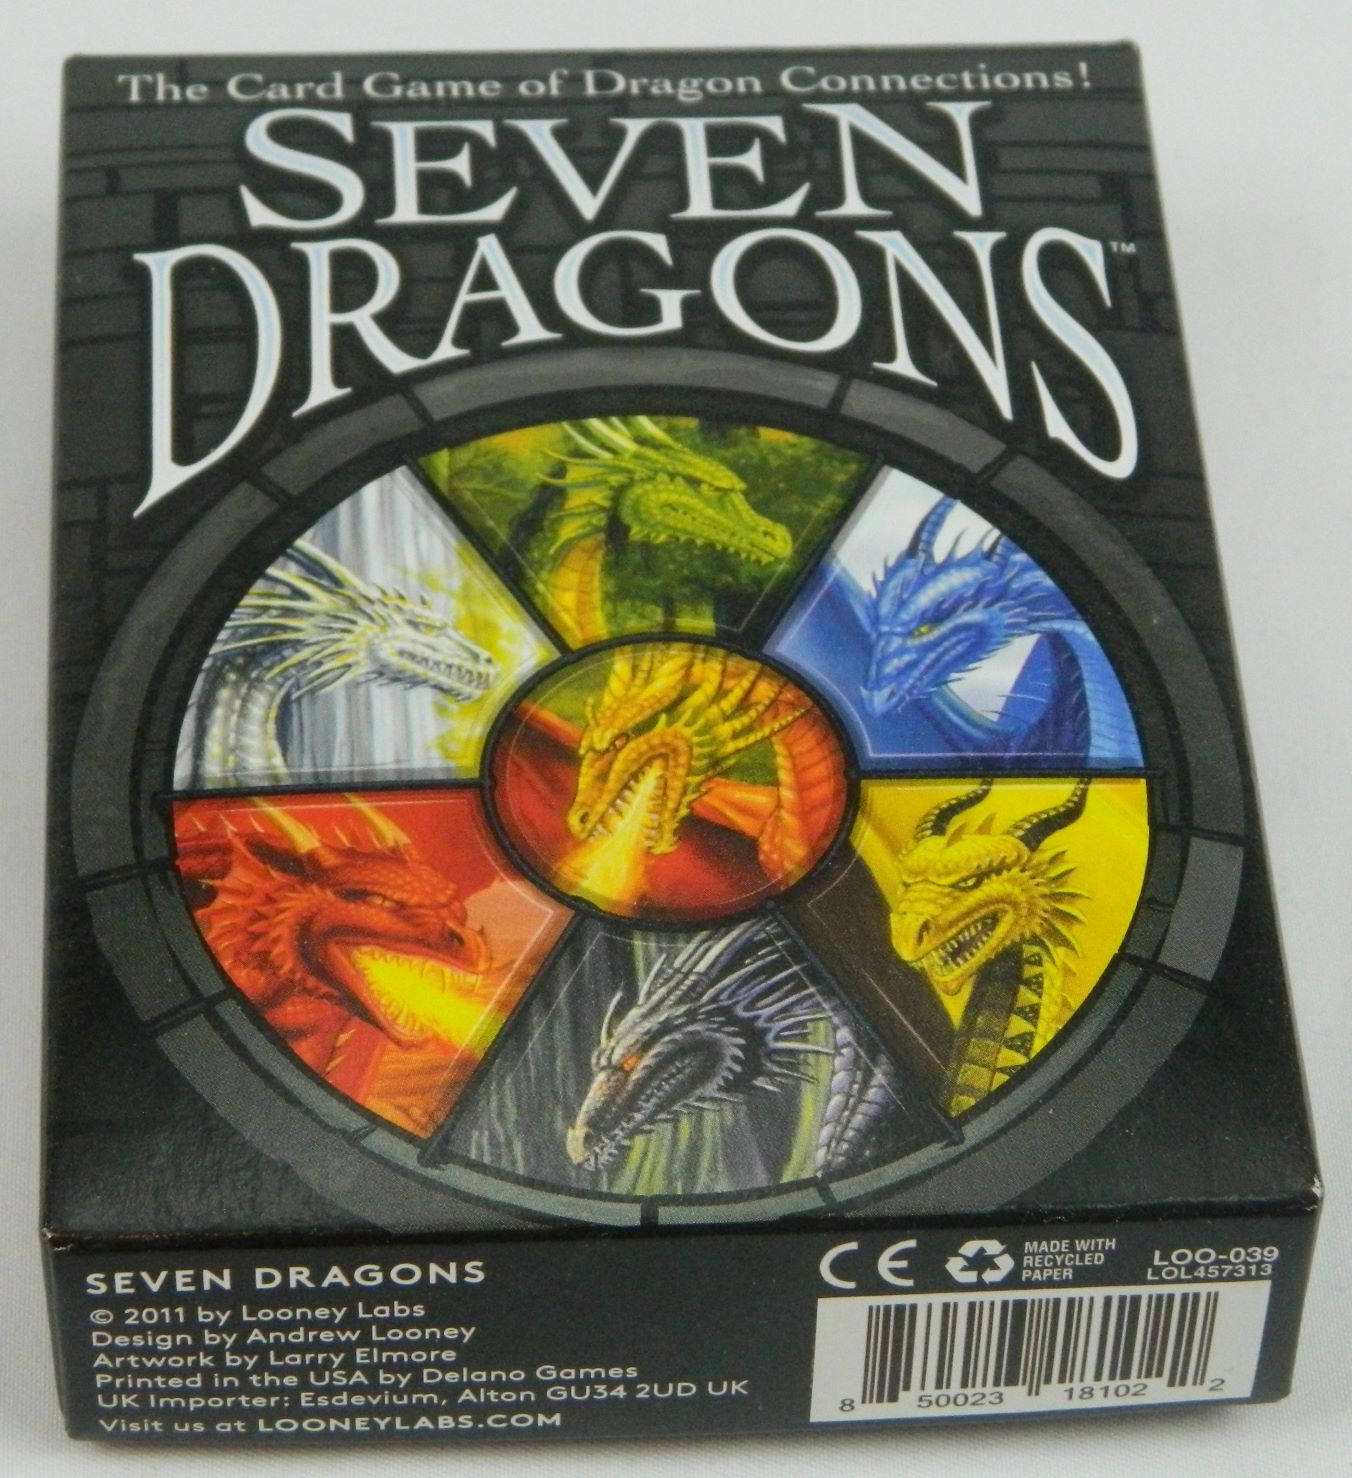 Box for Seven Dragons